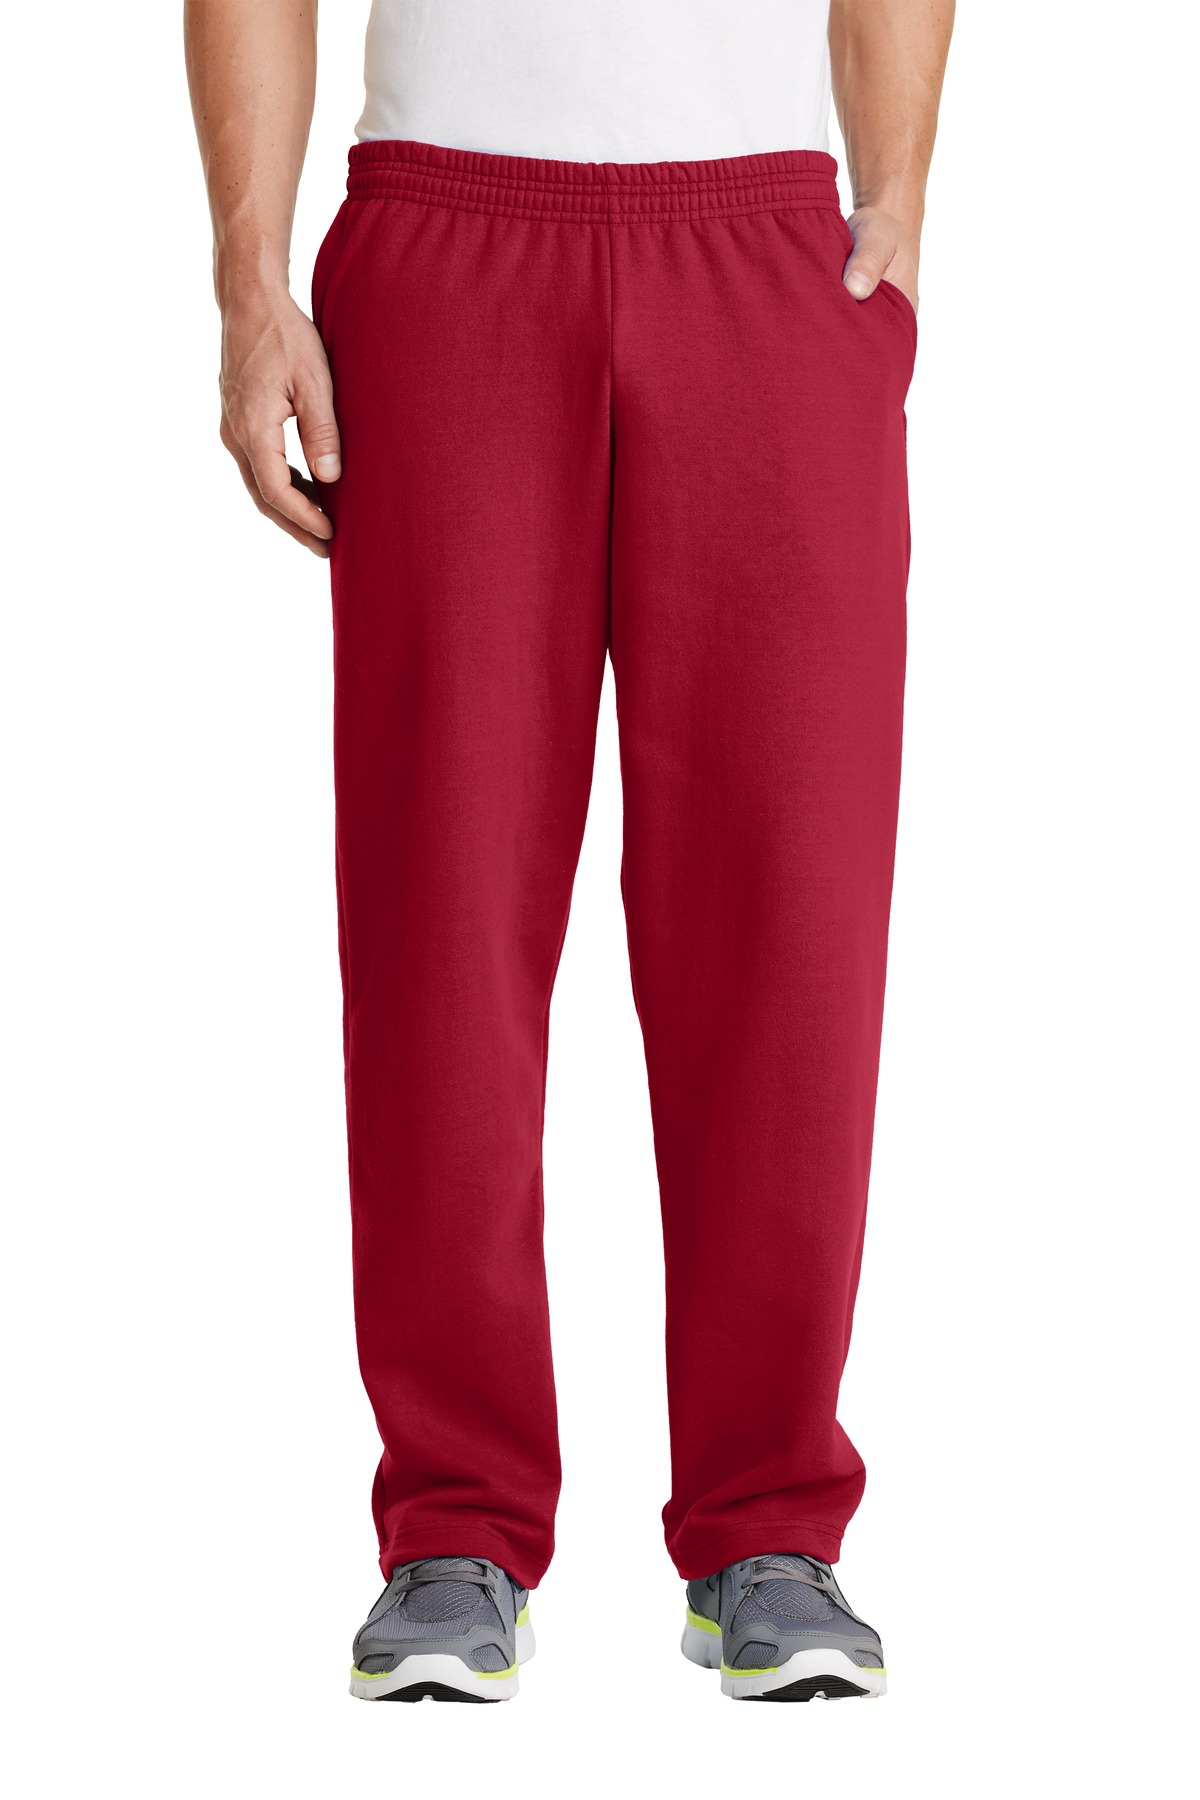 Port & Company ®  - Core Fleece Sweatpant with Pockets. PC78P - Red